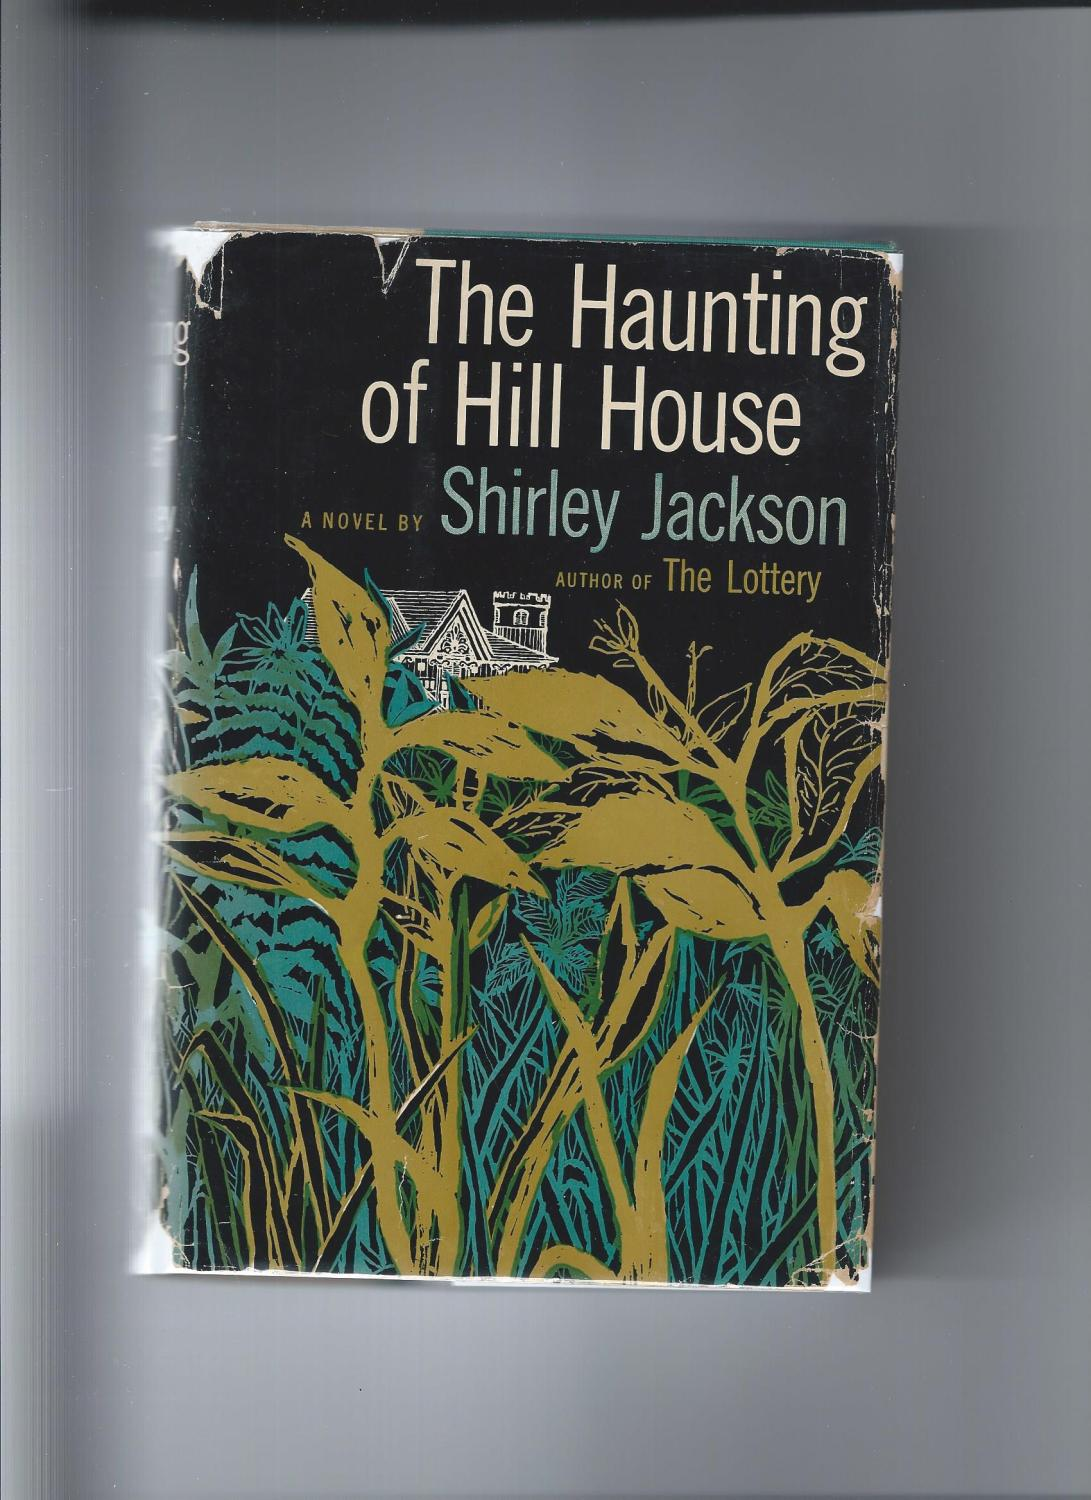 The haunting of hill house by shirley jackson abebooks fandeluxe Choice Image